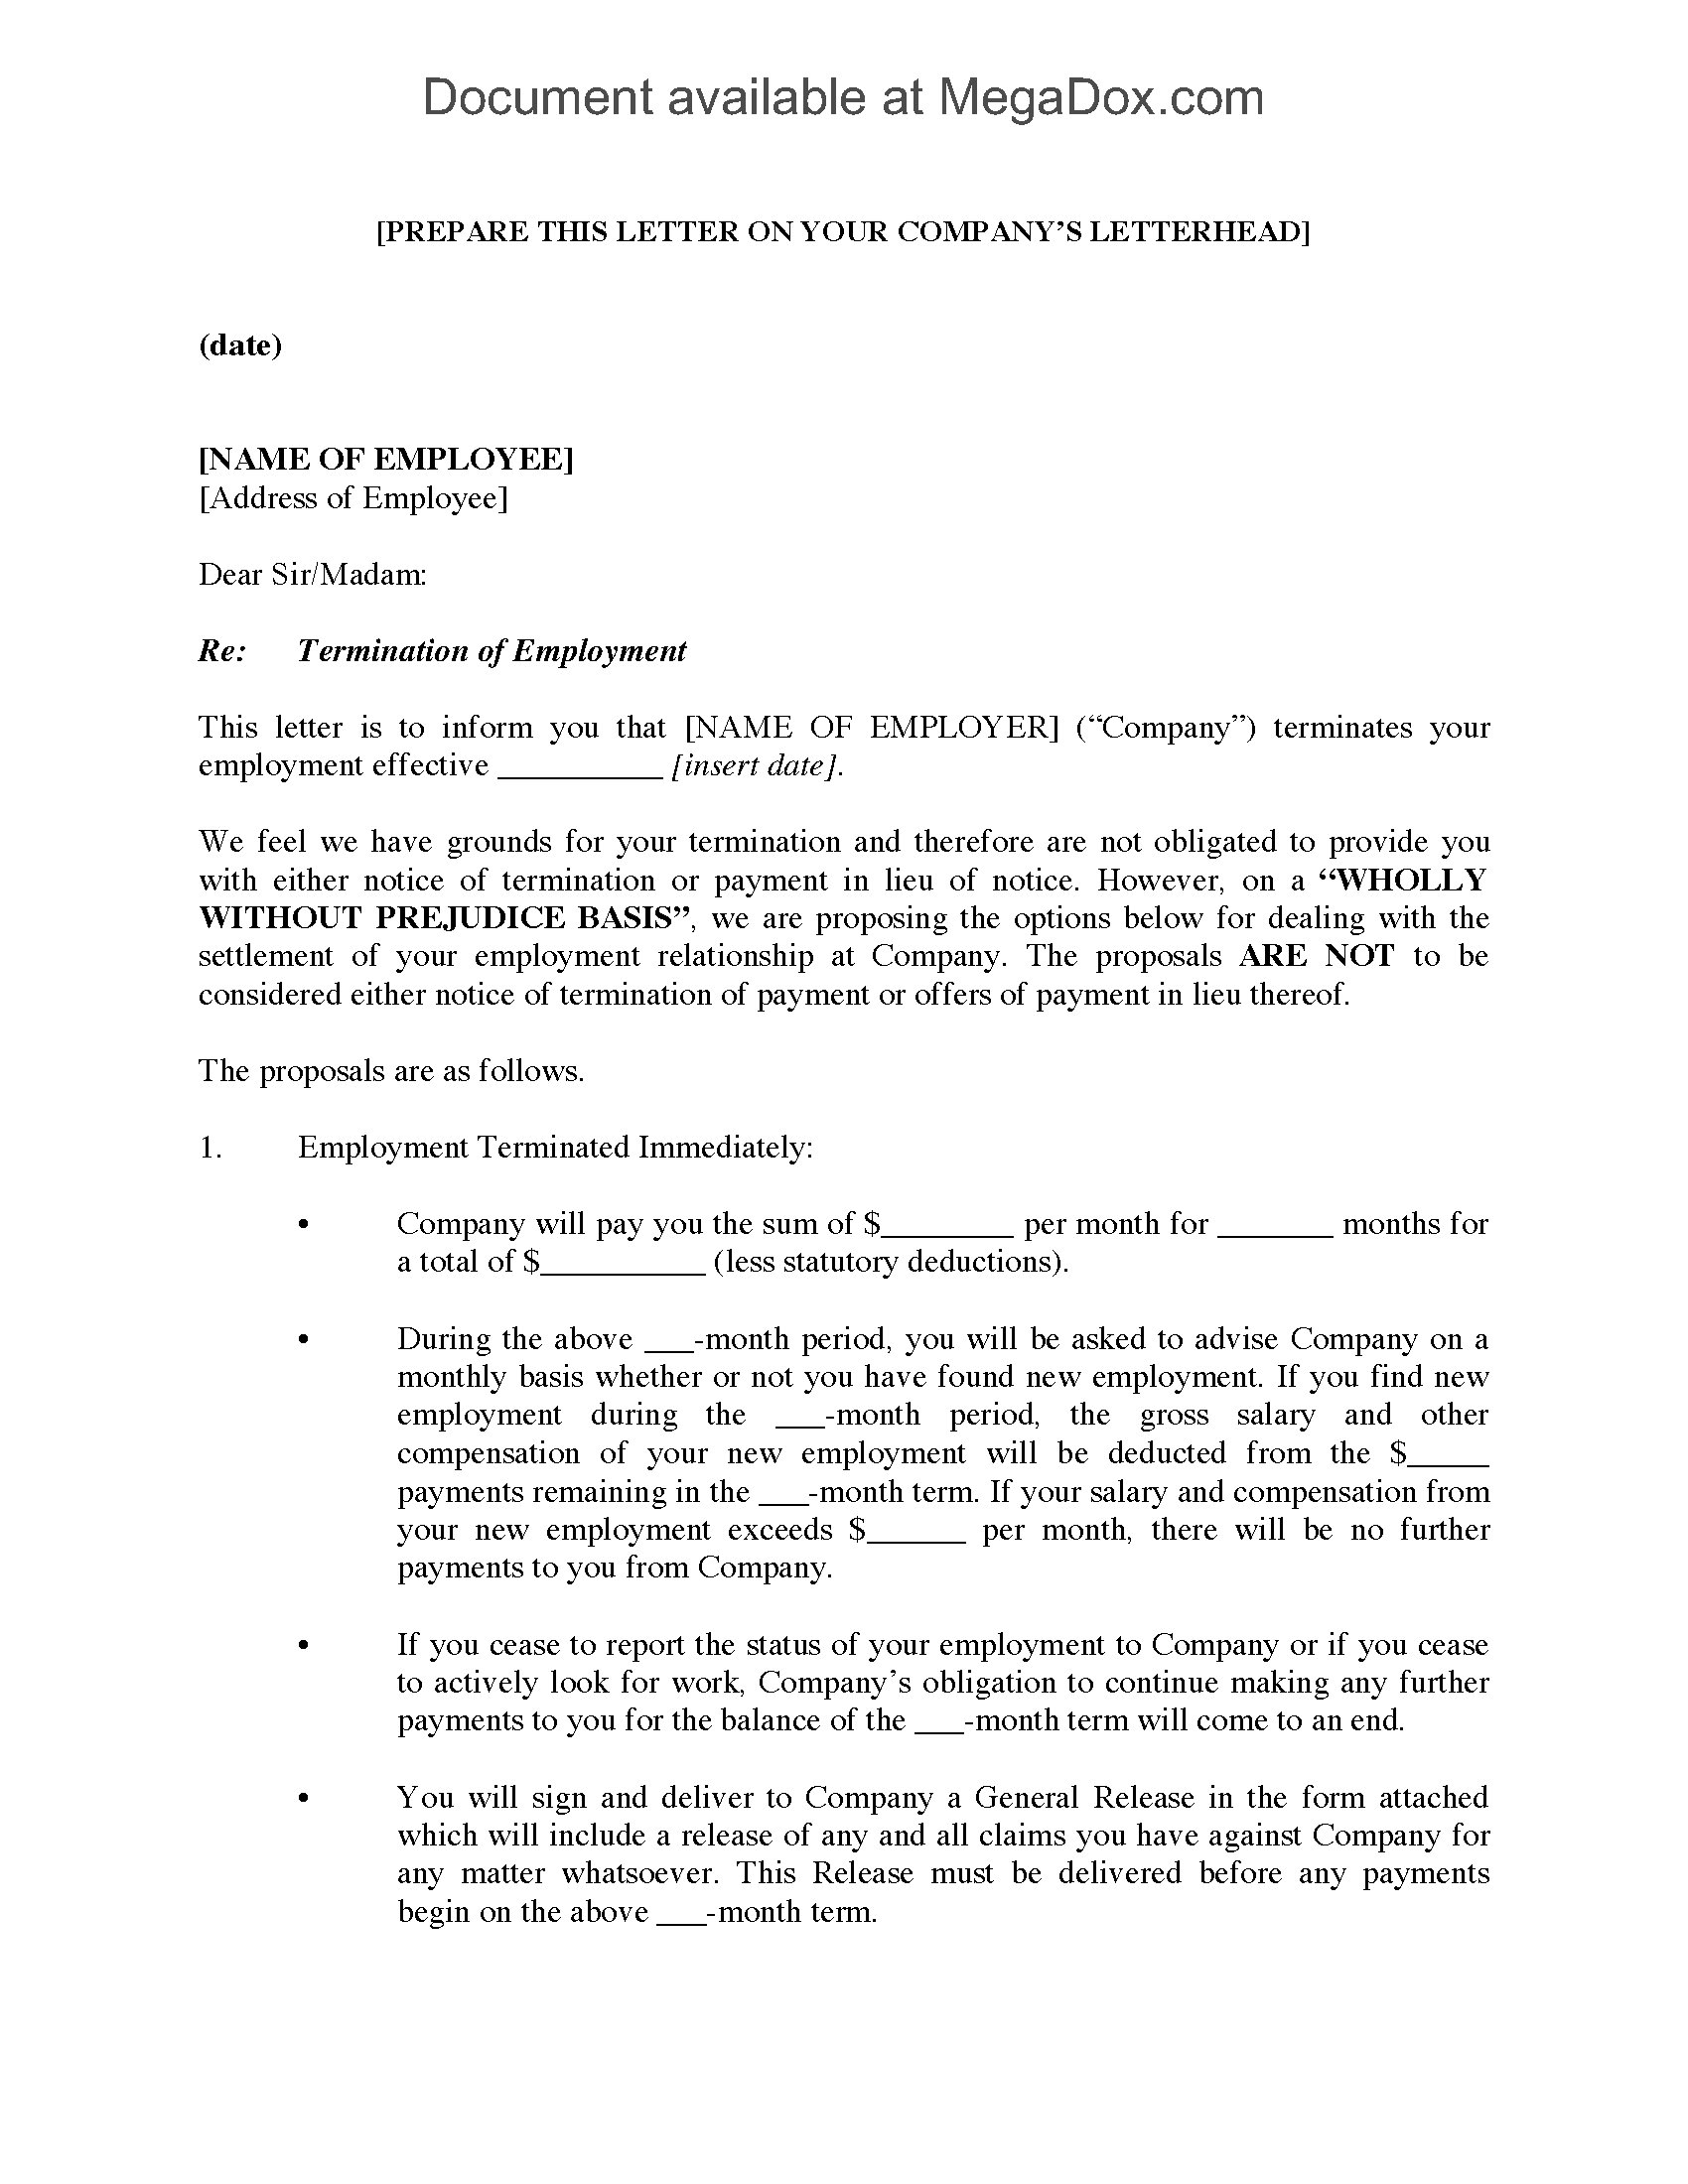 Employment Termination Letter With Settlement Proposal